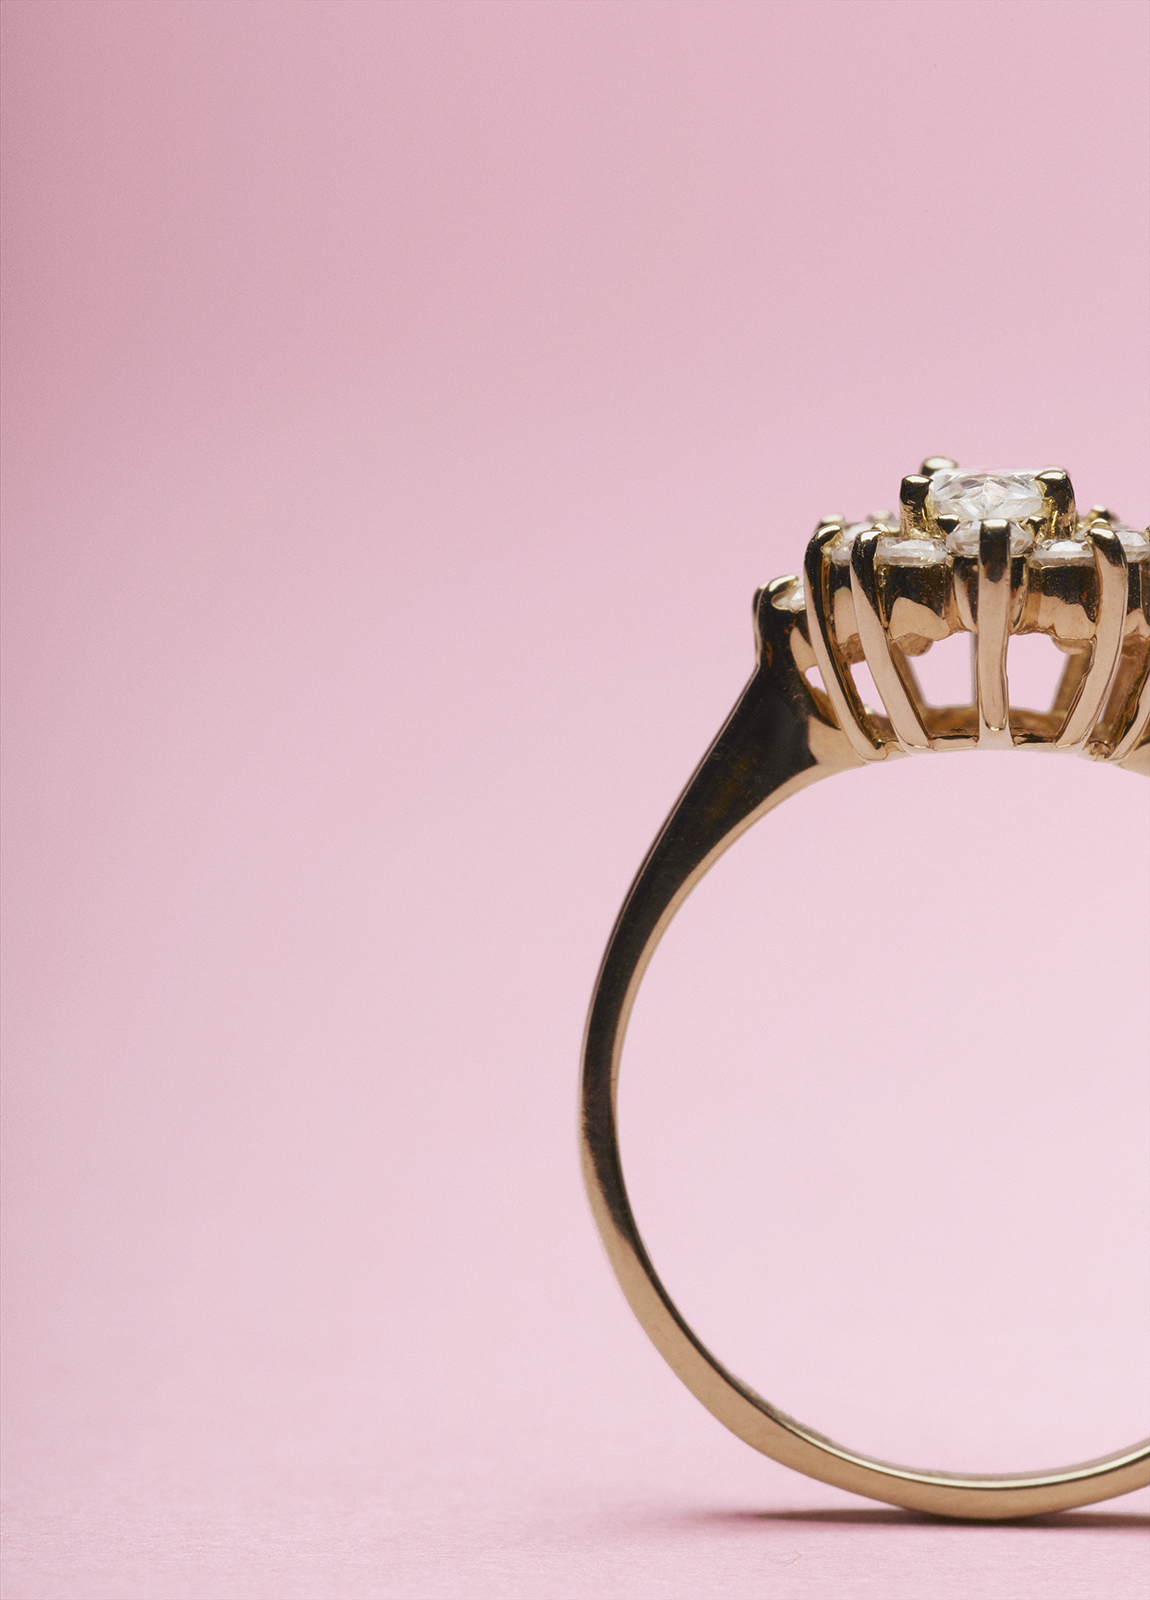 Engagement ring on pink background